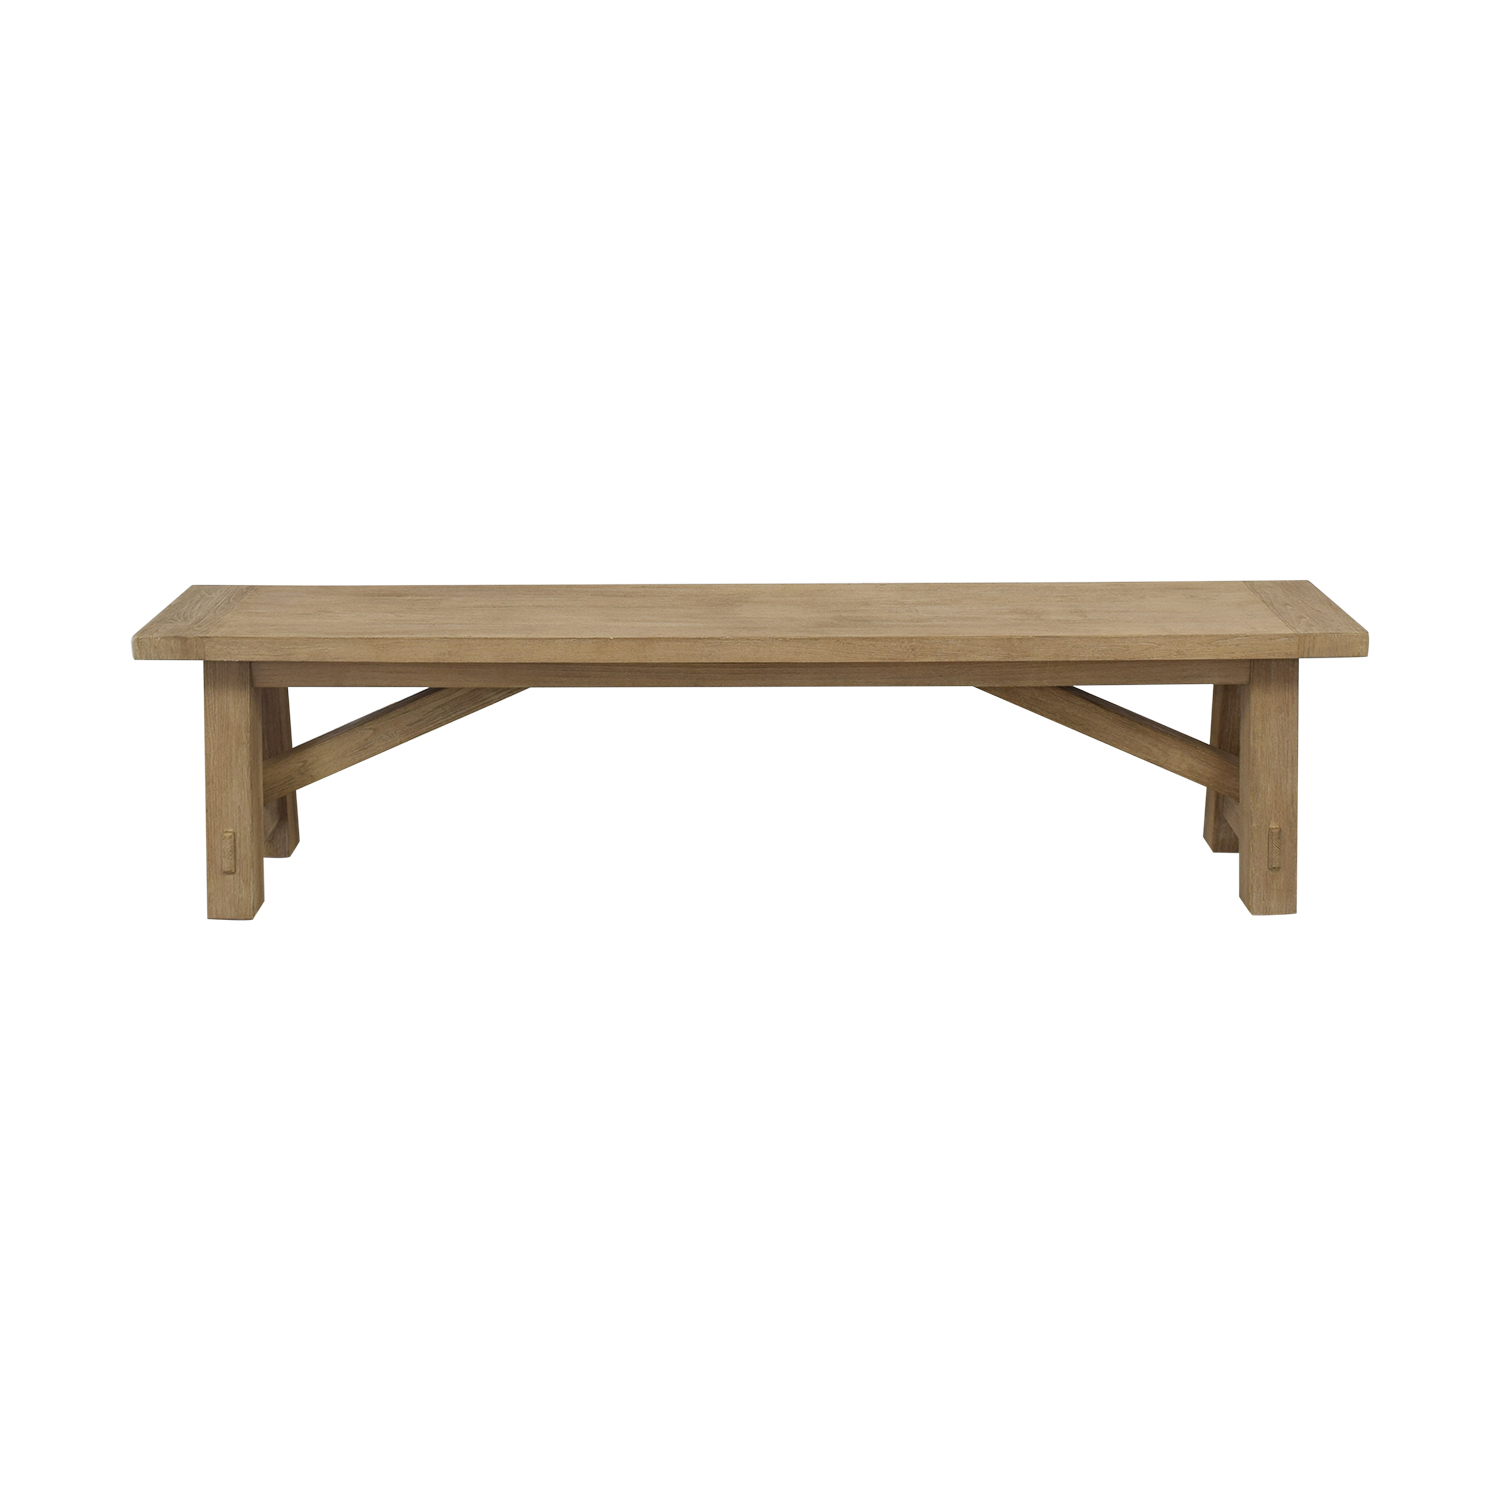 Pottery Barn Pottery Barn Toscana Dining Bench Benches